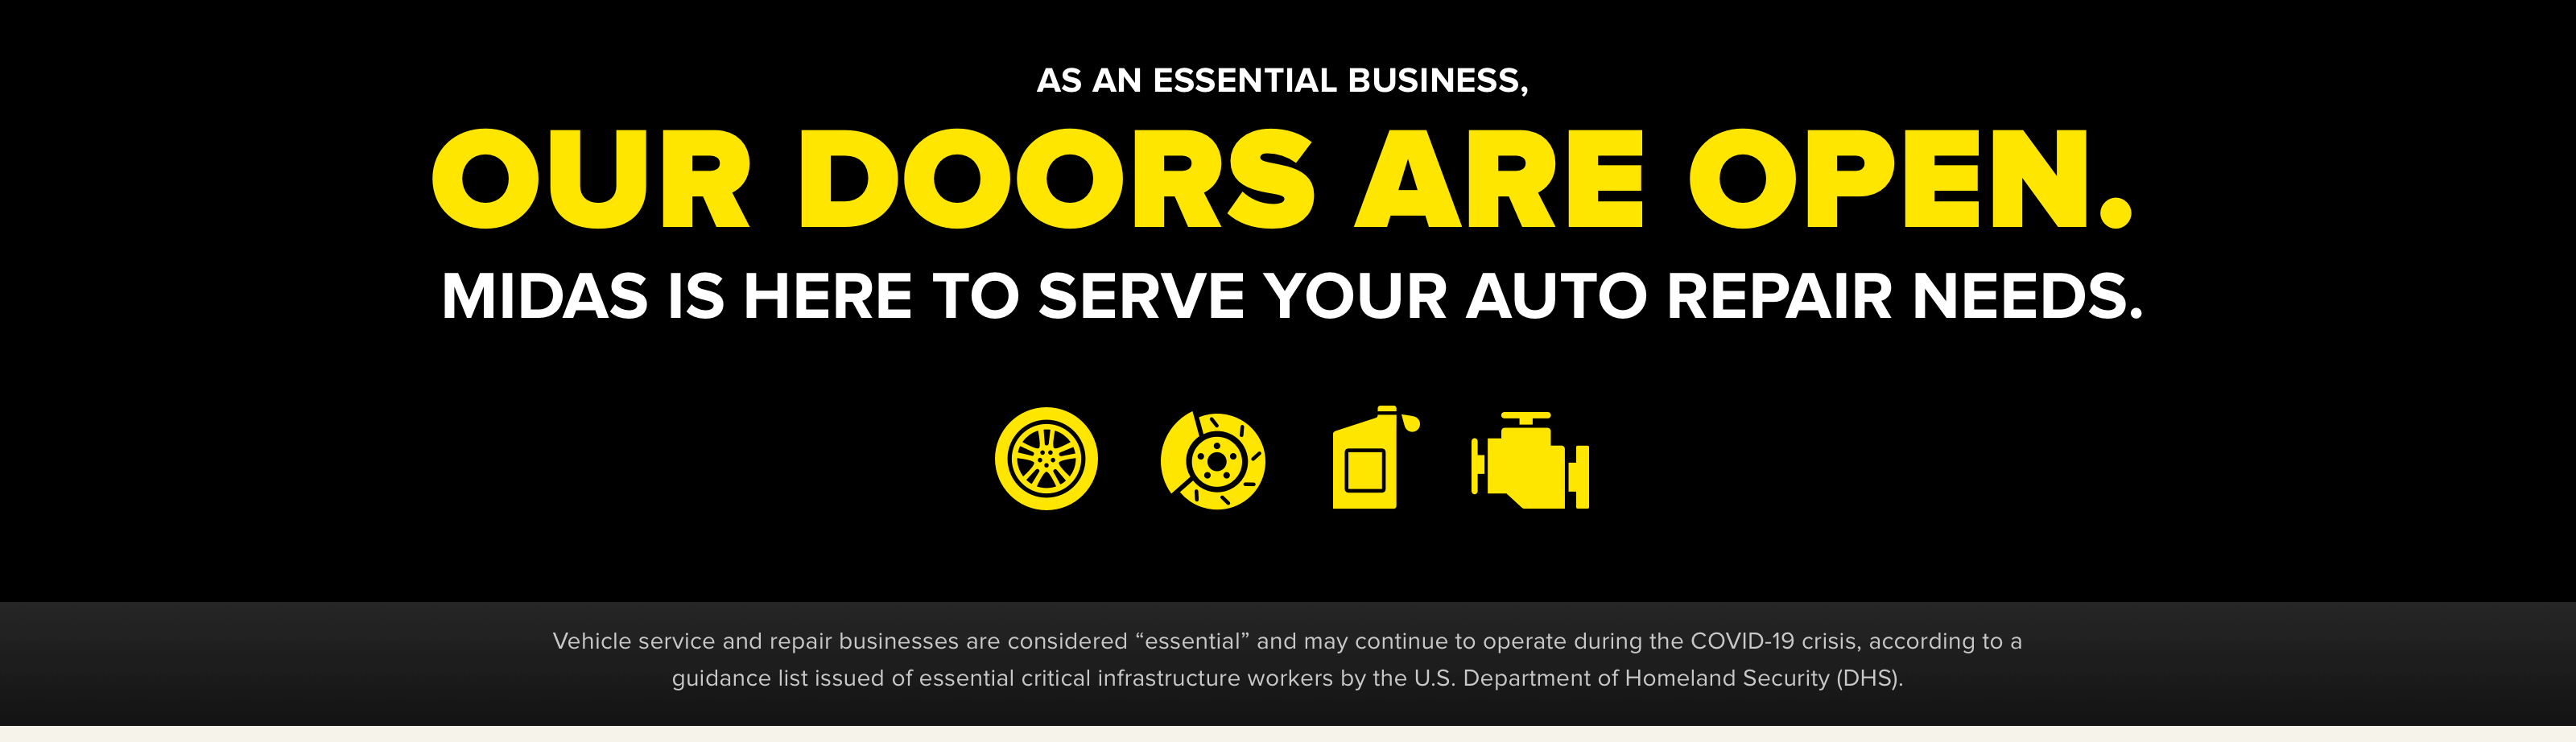 "As an essential business, our doors are open. Midas is here to serve your auto repair needs. Vehicle service and repair businesses are considered ""essential"" and may continue to operate during the COVID-19 crisis, according to a guidance list issued of essential critical infrastructure workers by the U.S. Department of Homeland Security (DHS)."